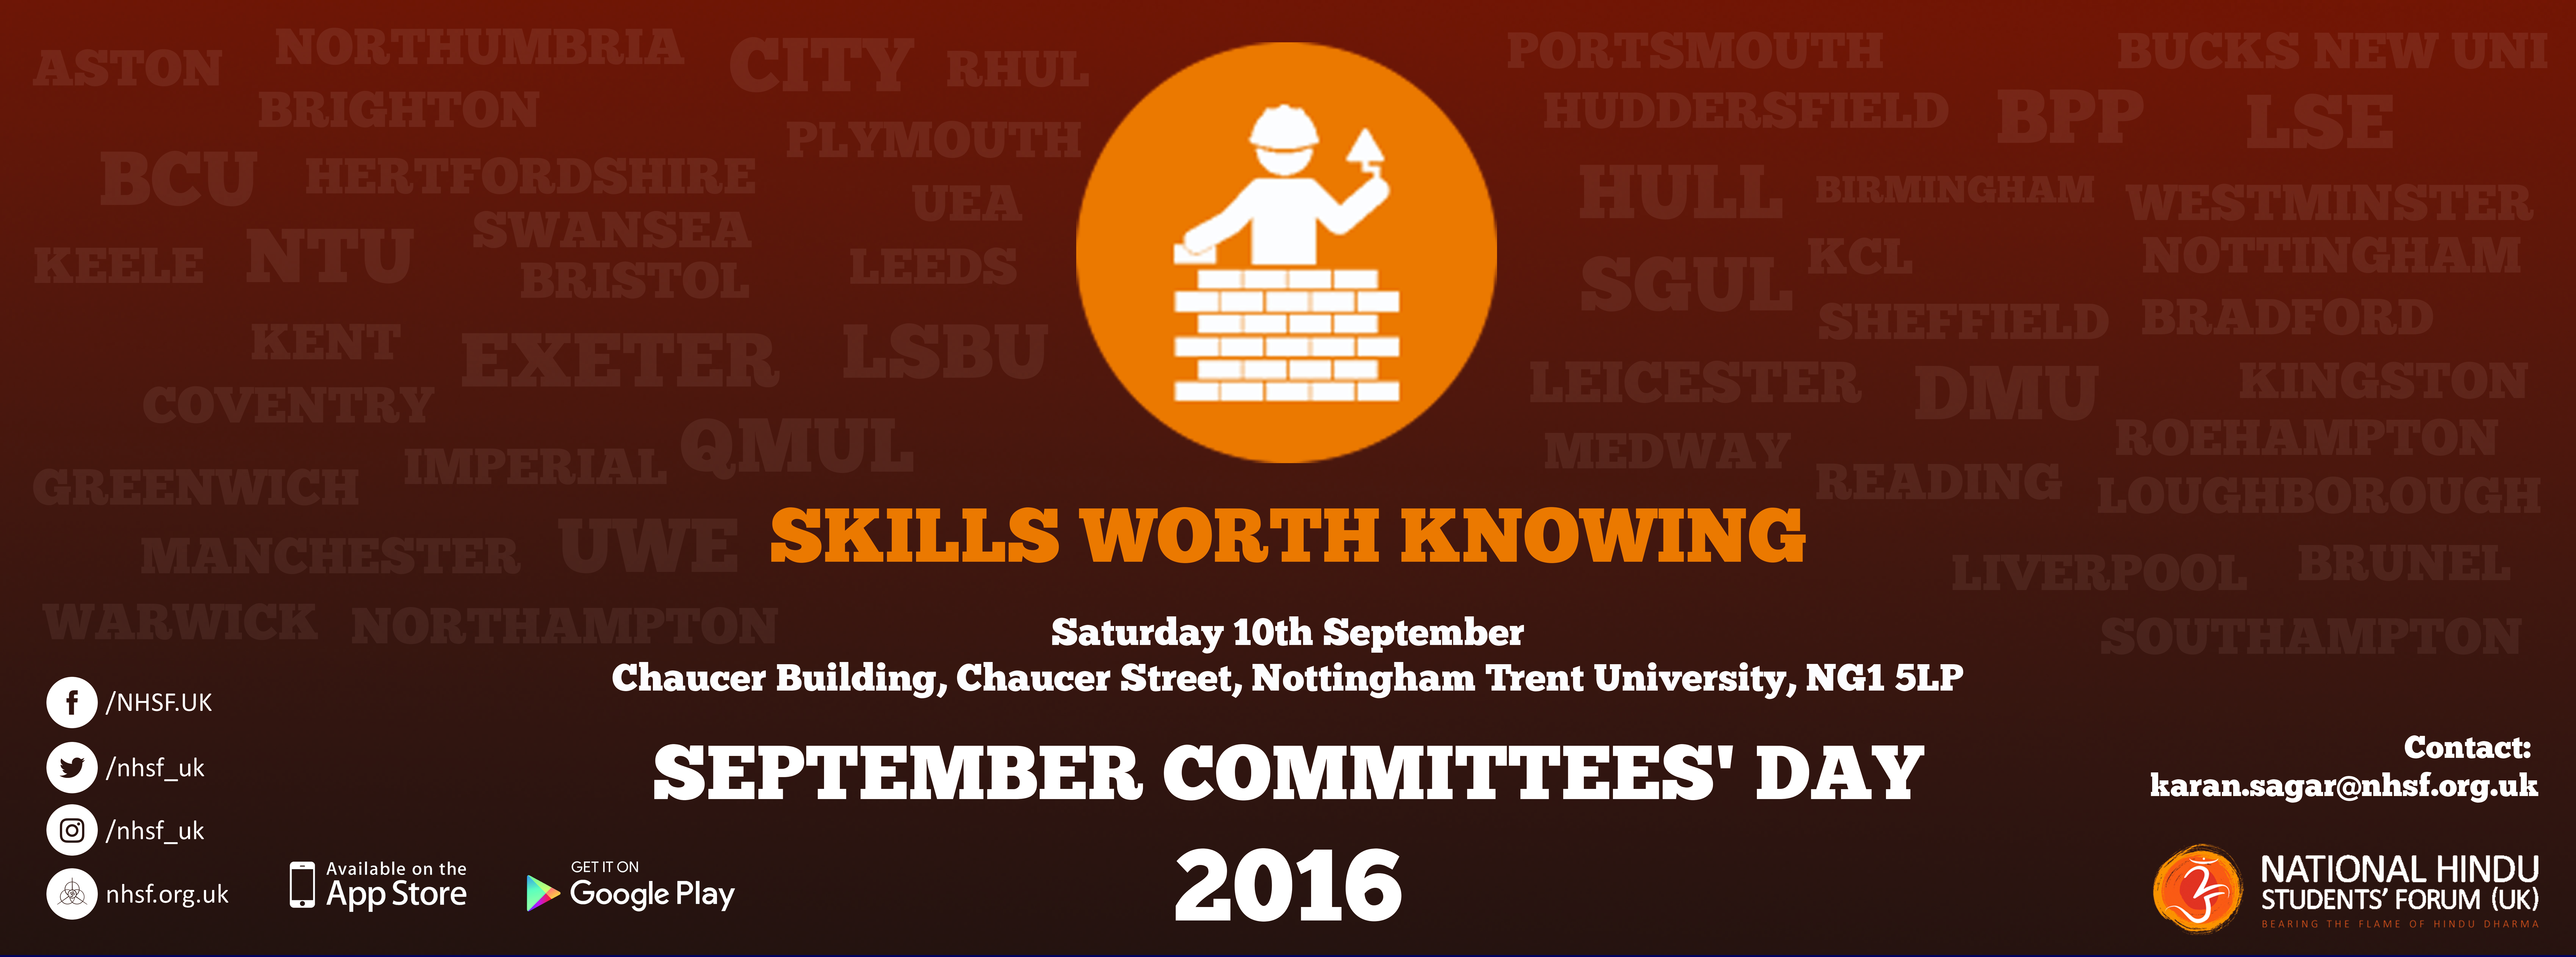 NHSF (UK) September Committees' Day – Skills Worth Knowing